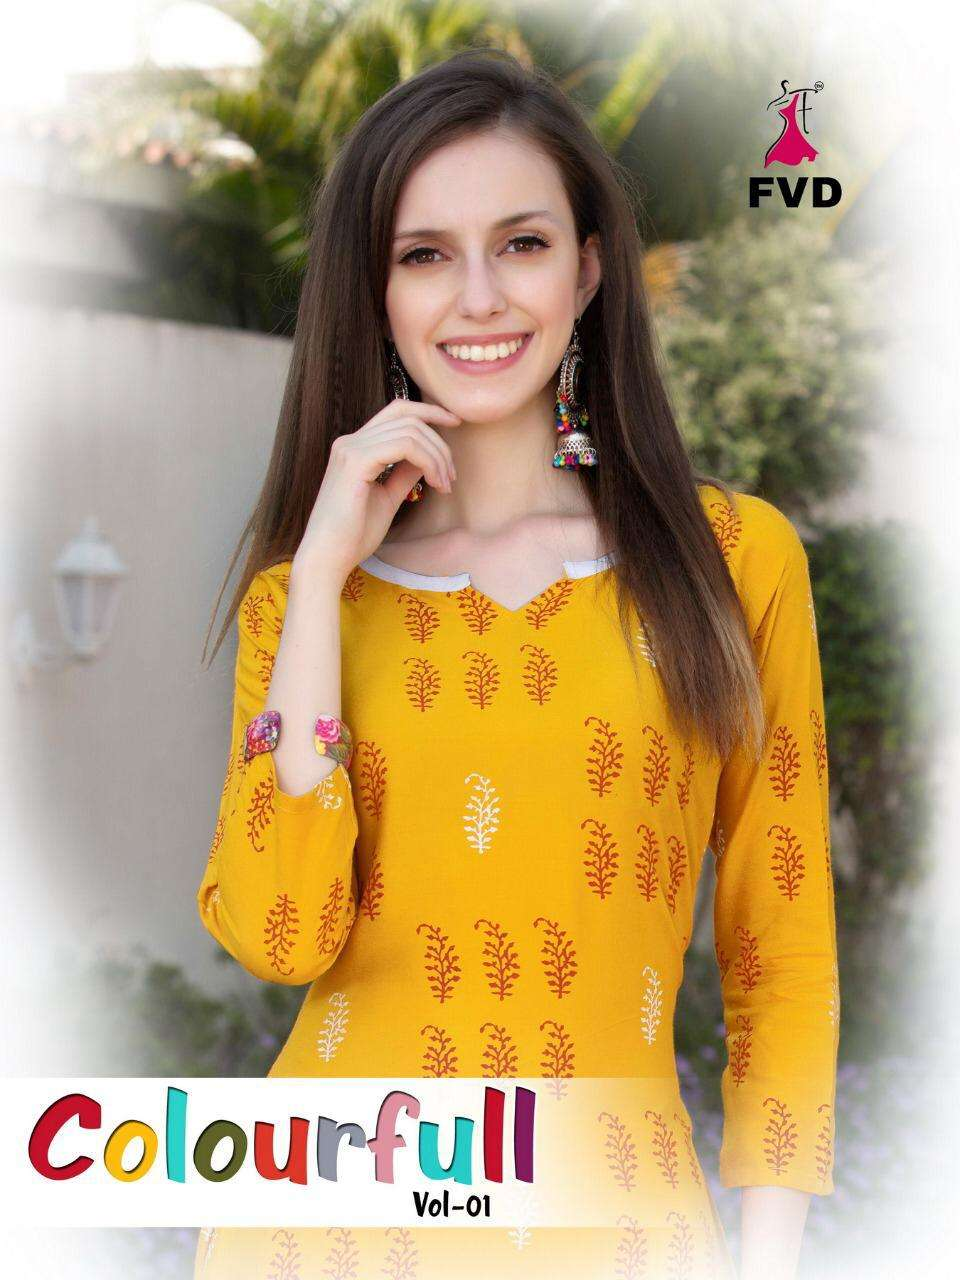 fvd present colourfull rayon top with sharara collection